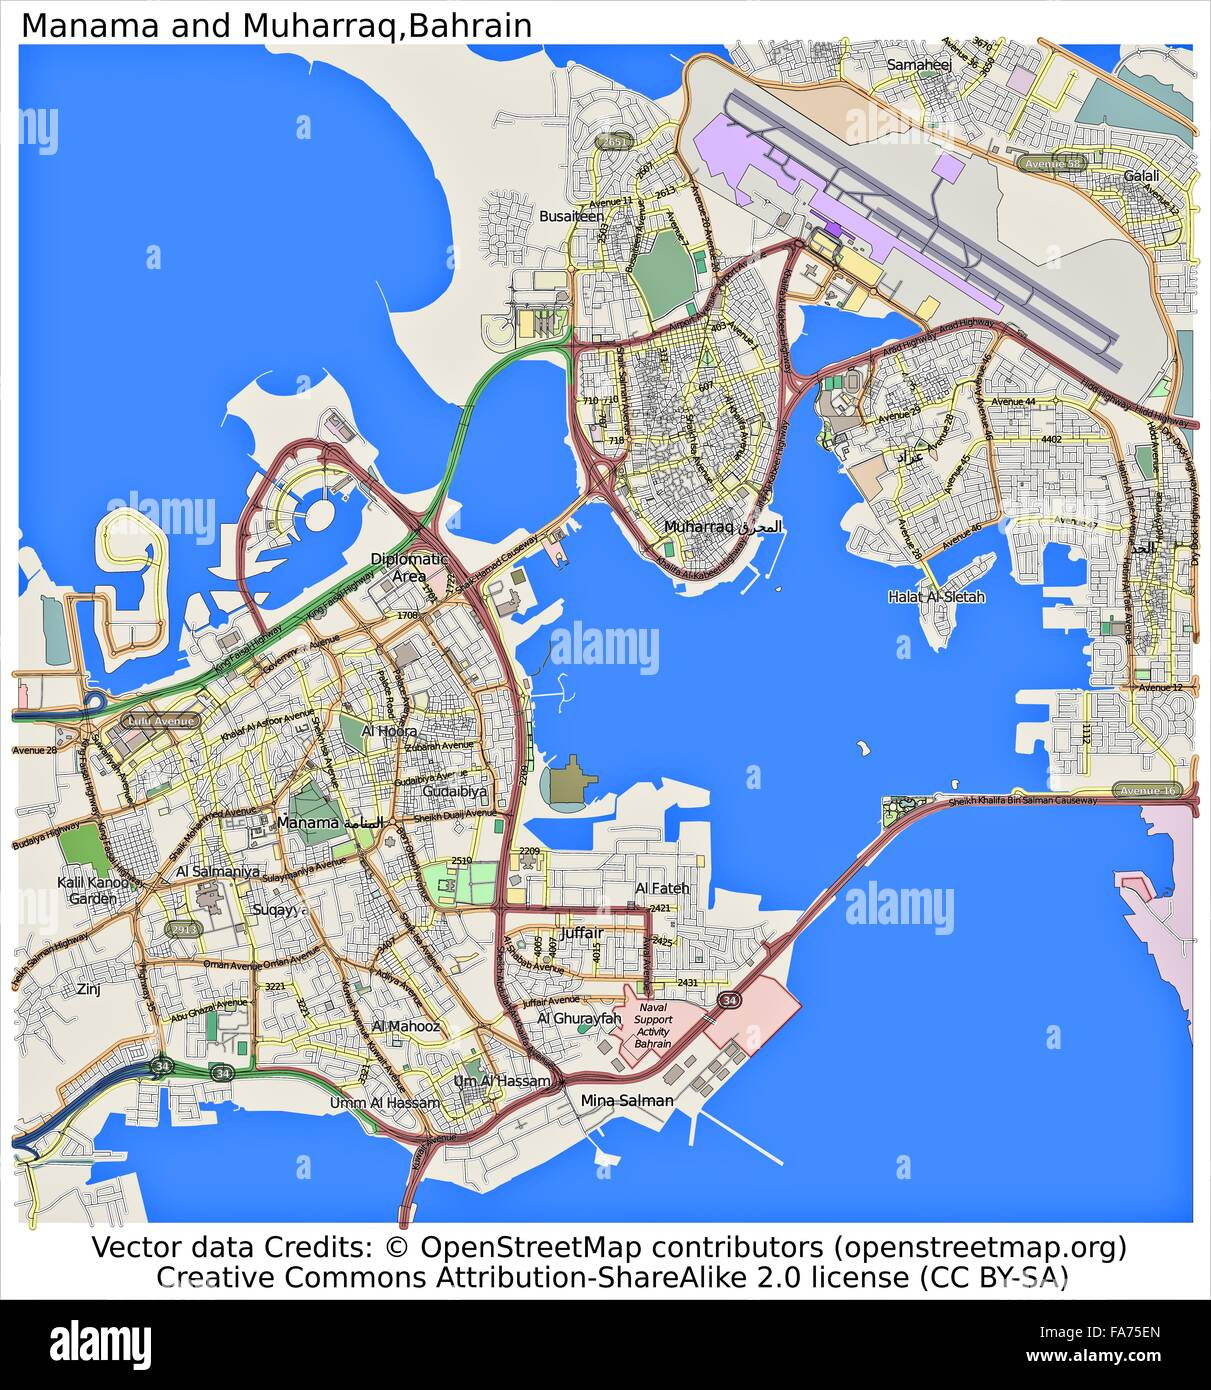 Manama Muharraq Bahrain location map Stock Photo: 92356397 - Alamy